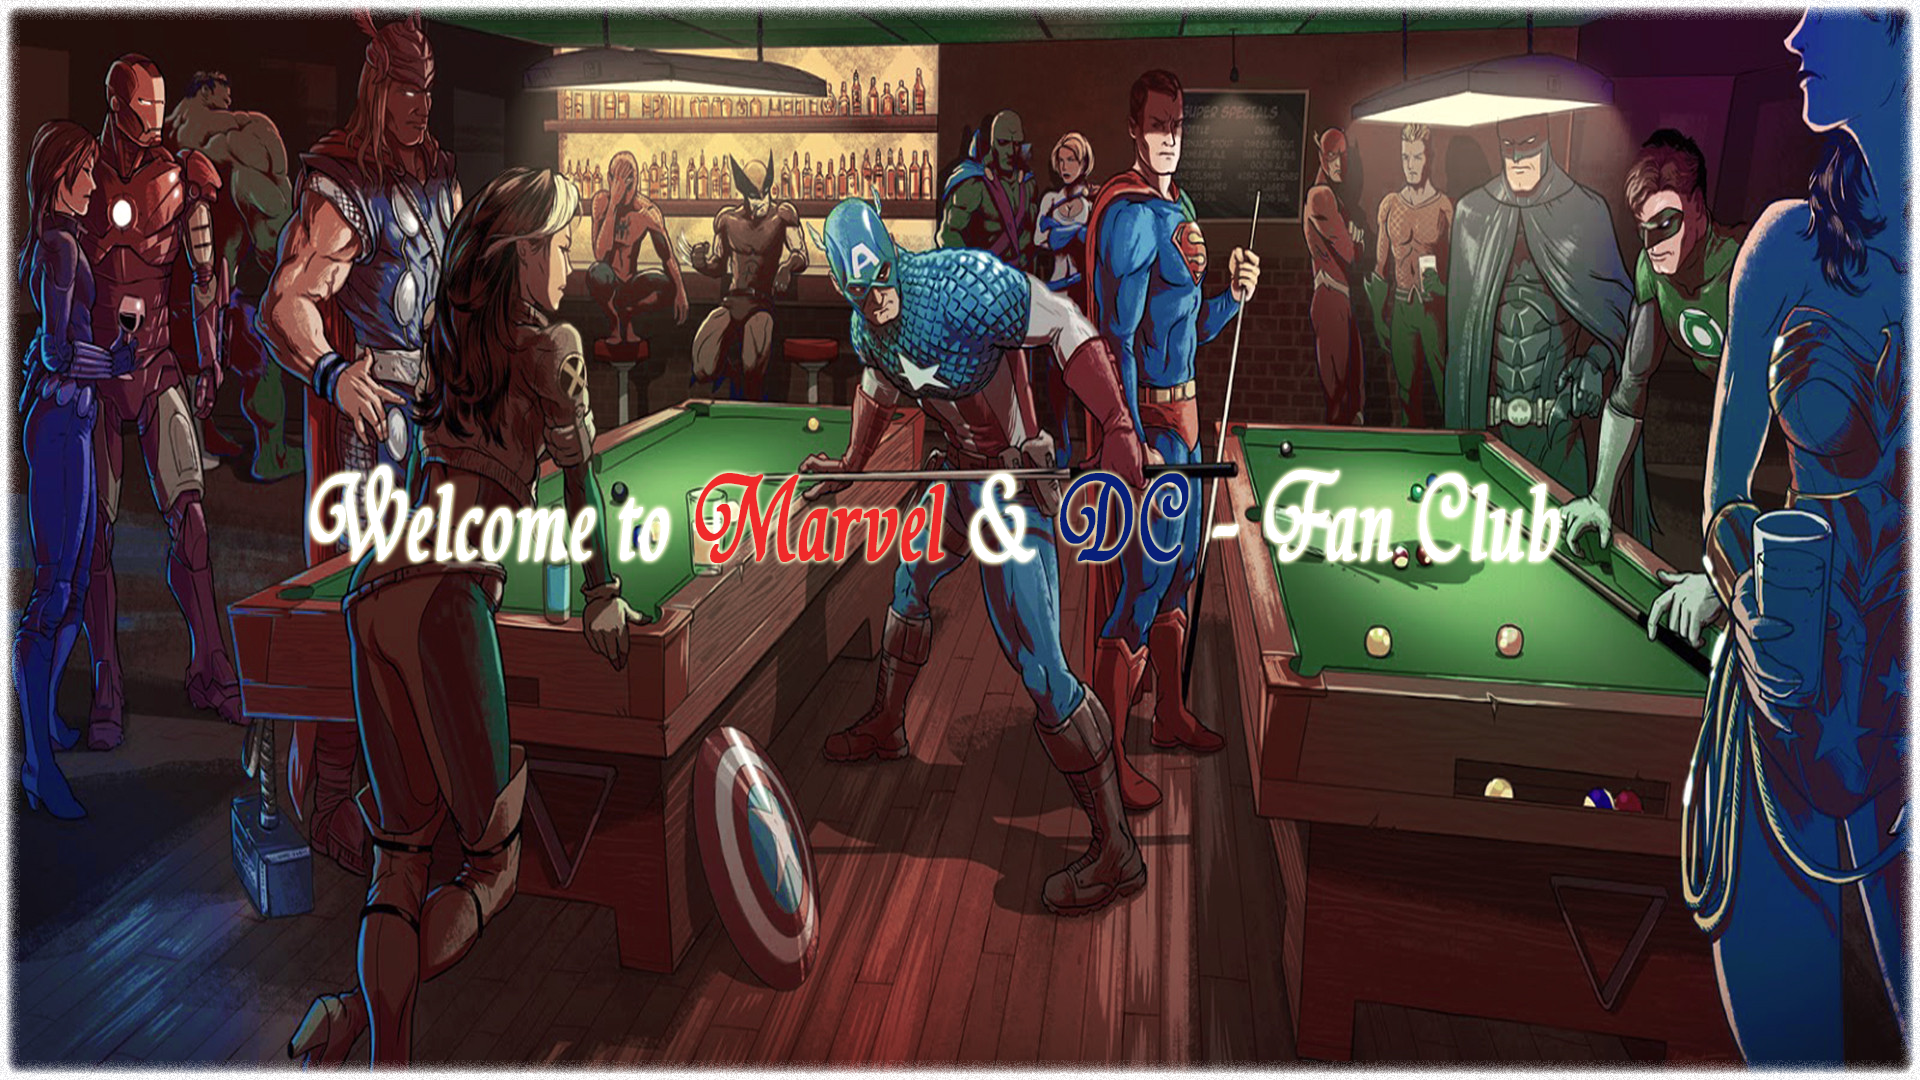 Report RSS Welcome to the new Marvel & DC Fan Club! (view original #1E3B69